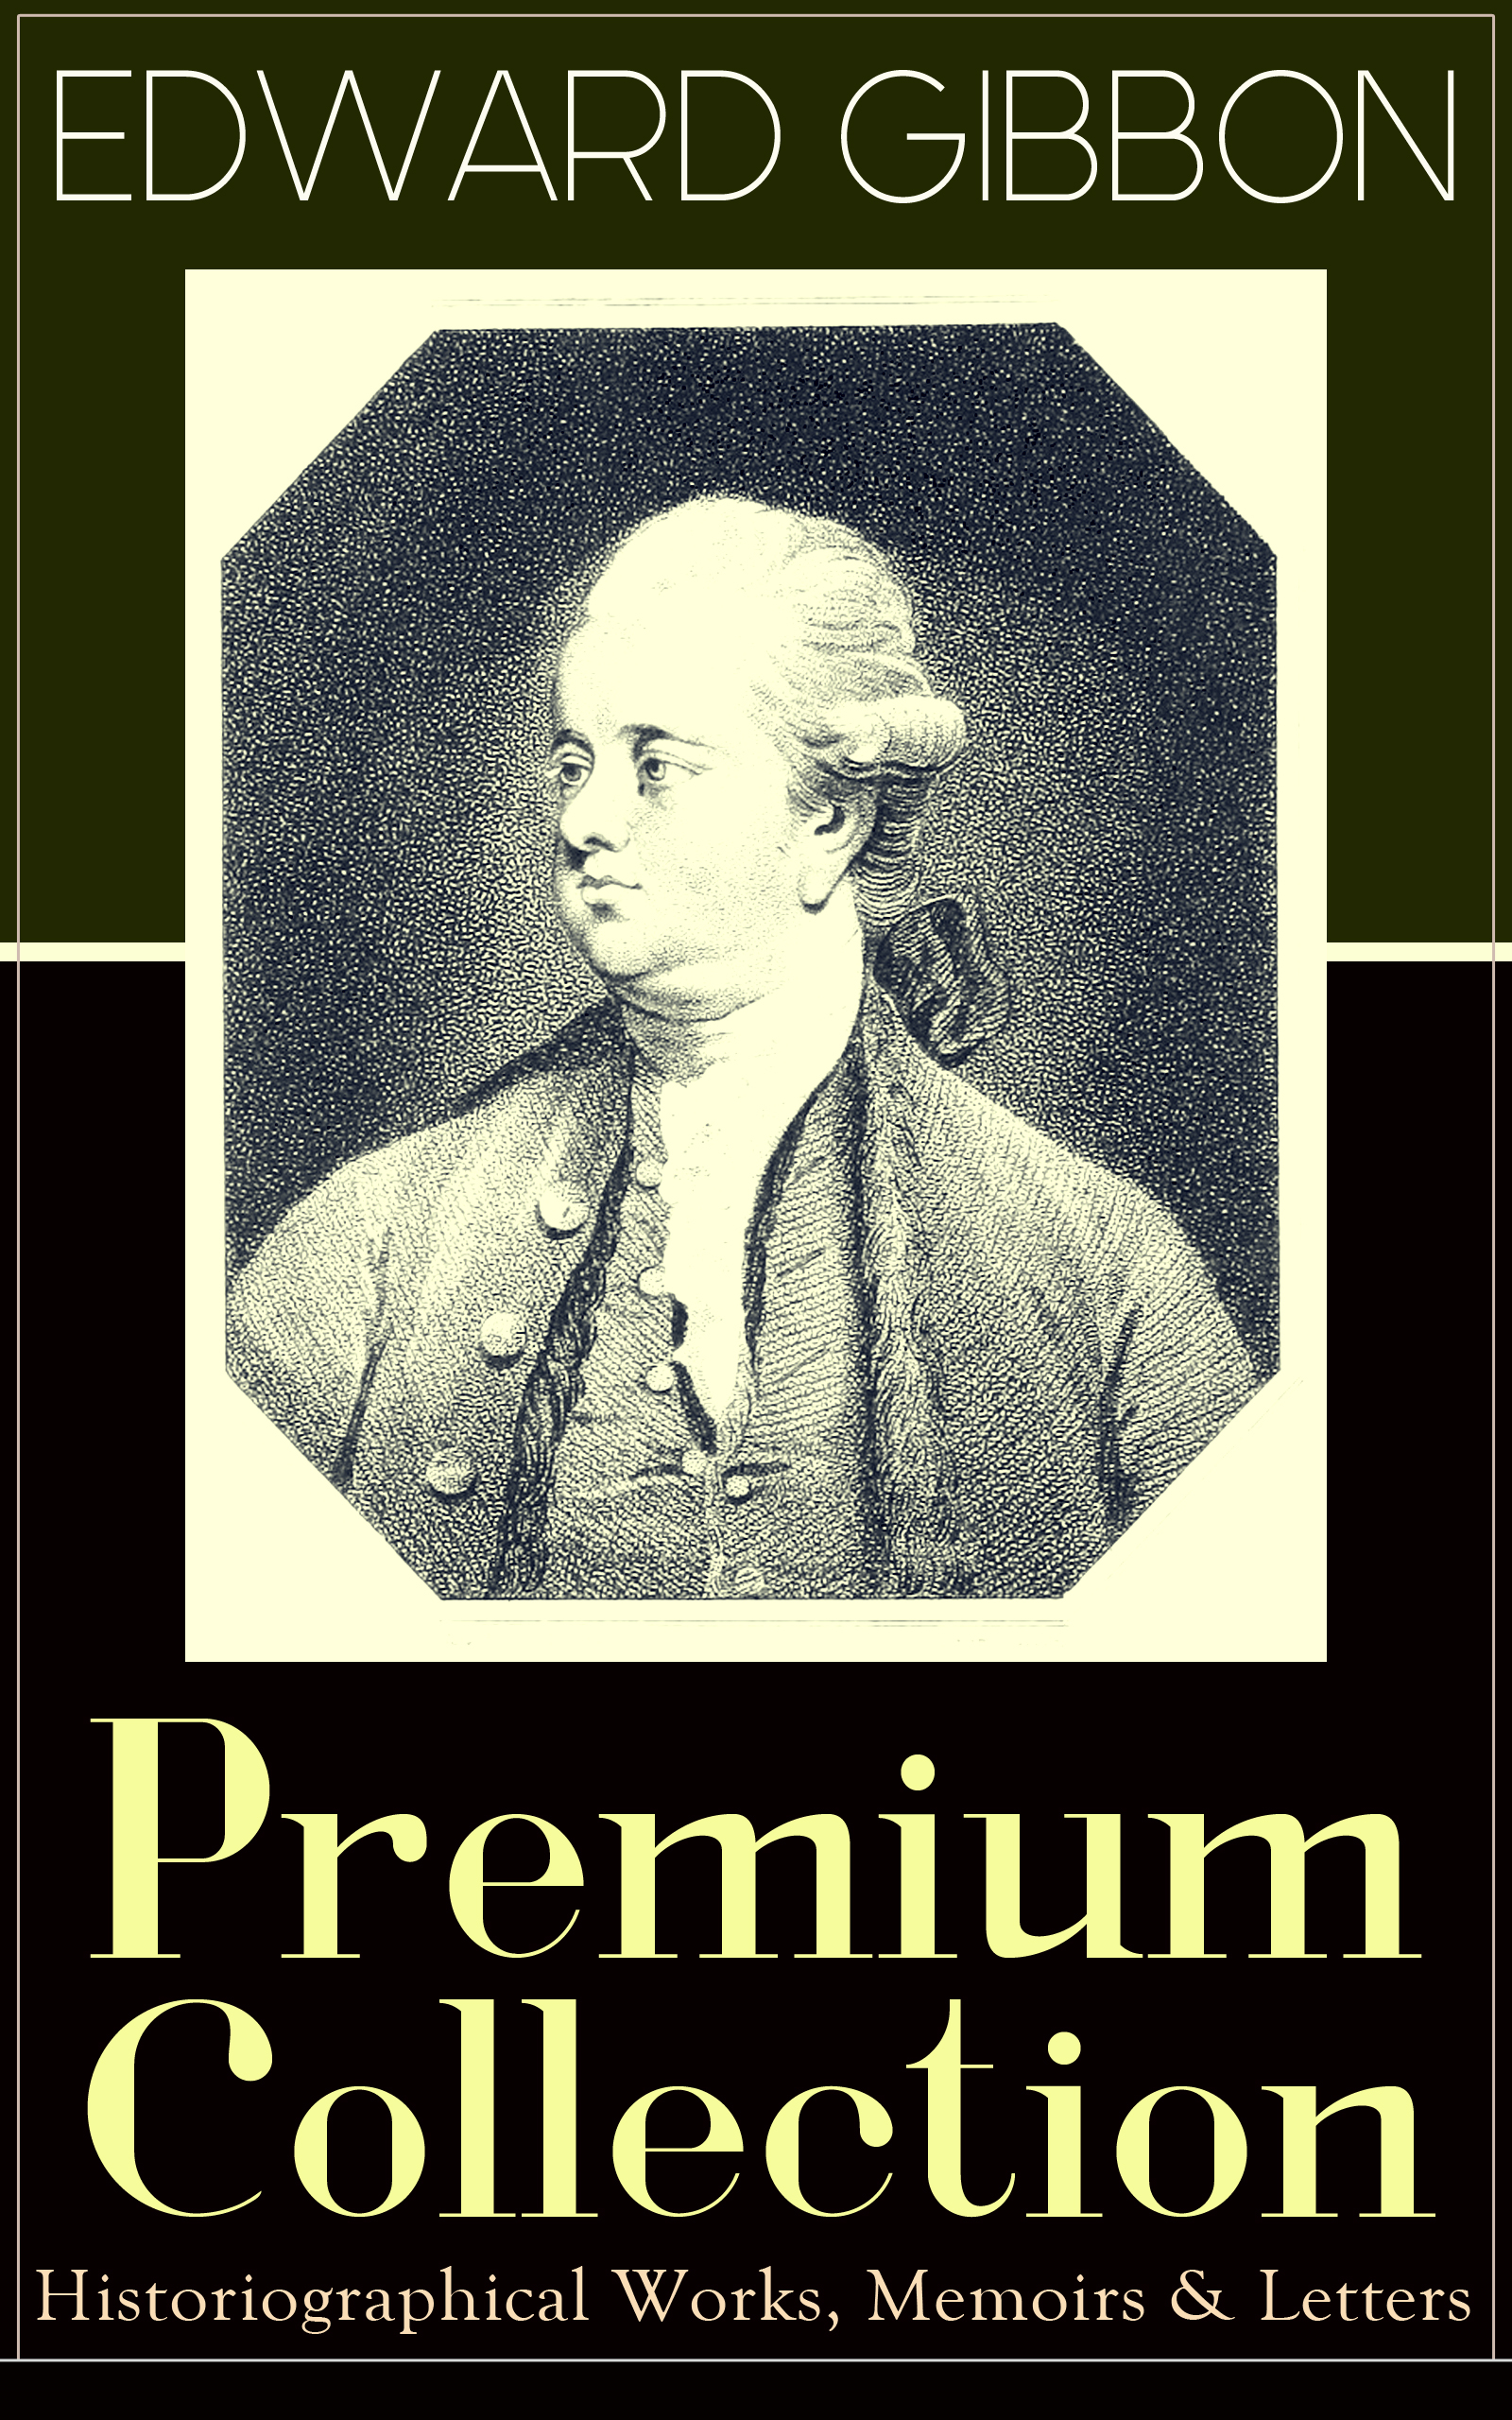 Edward Gibbon EDWARD GIBBON Premium Collection: Historiographical Works, Memoirs & Letters брюки edward achour